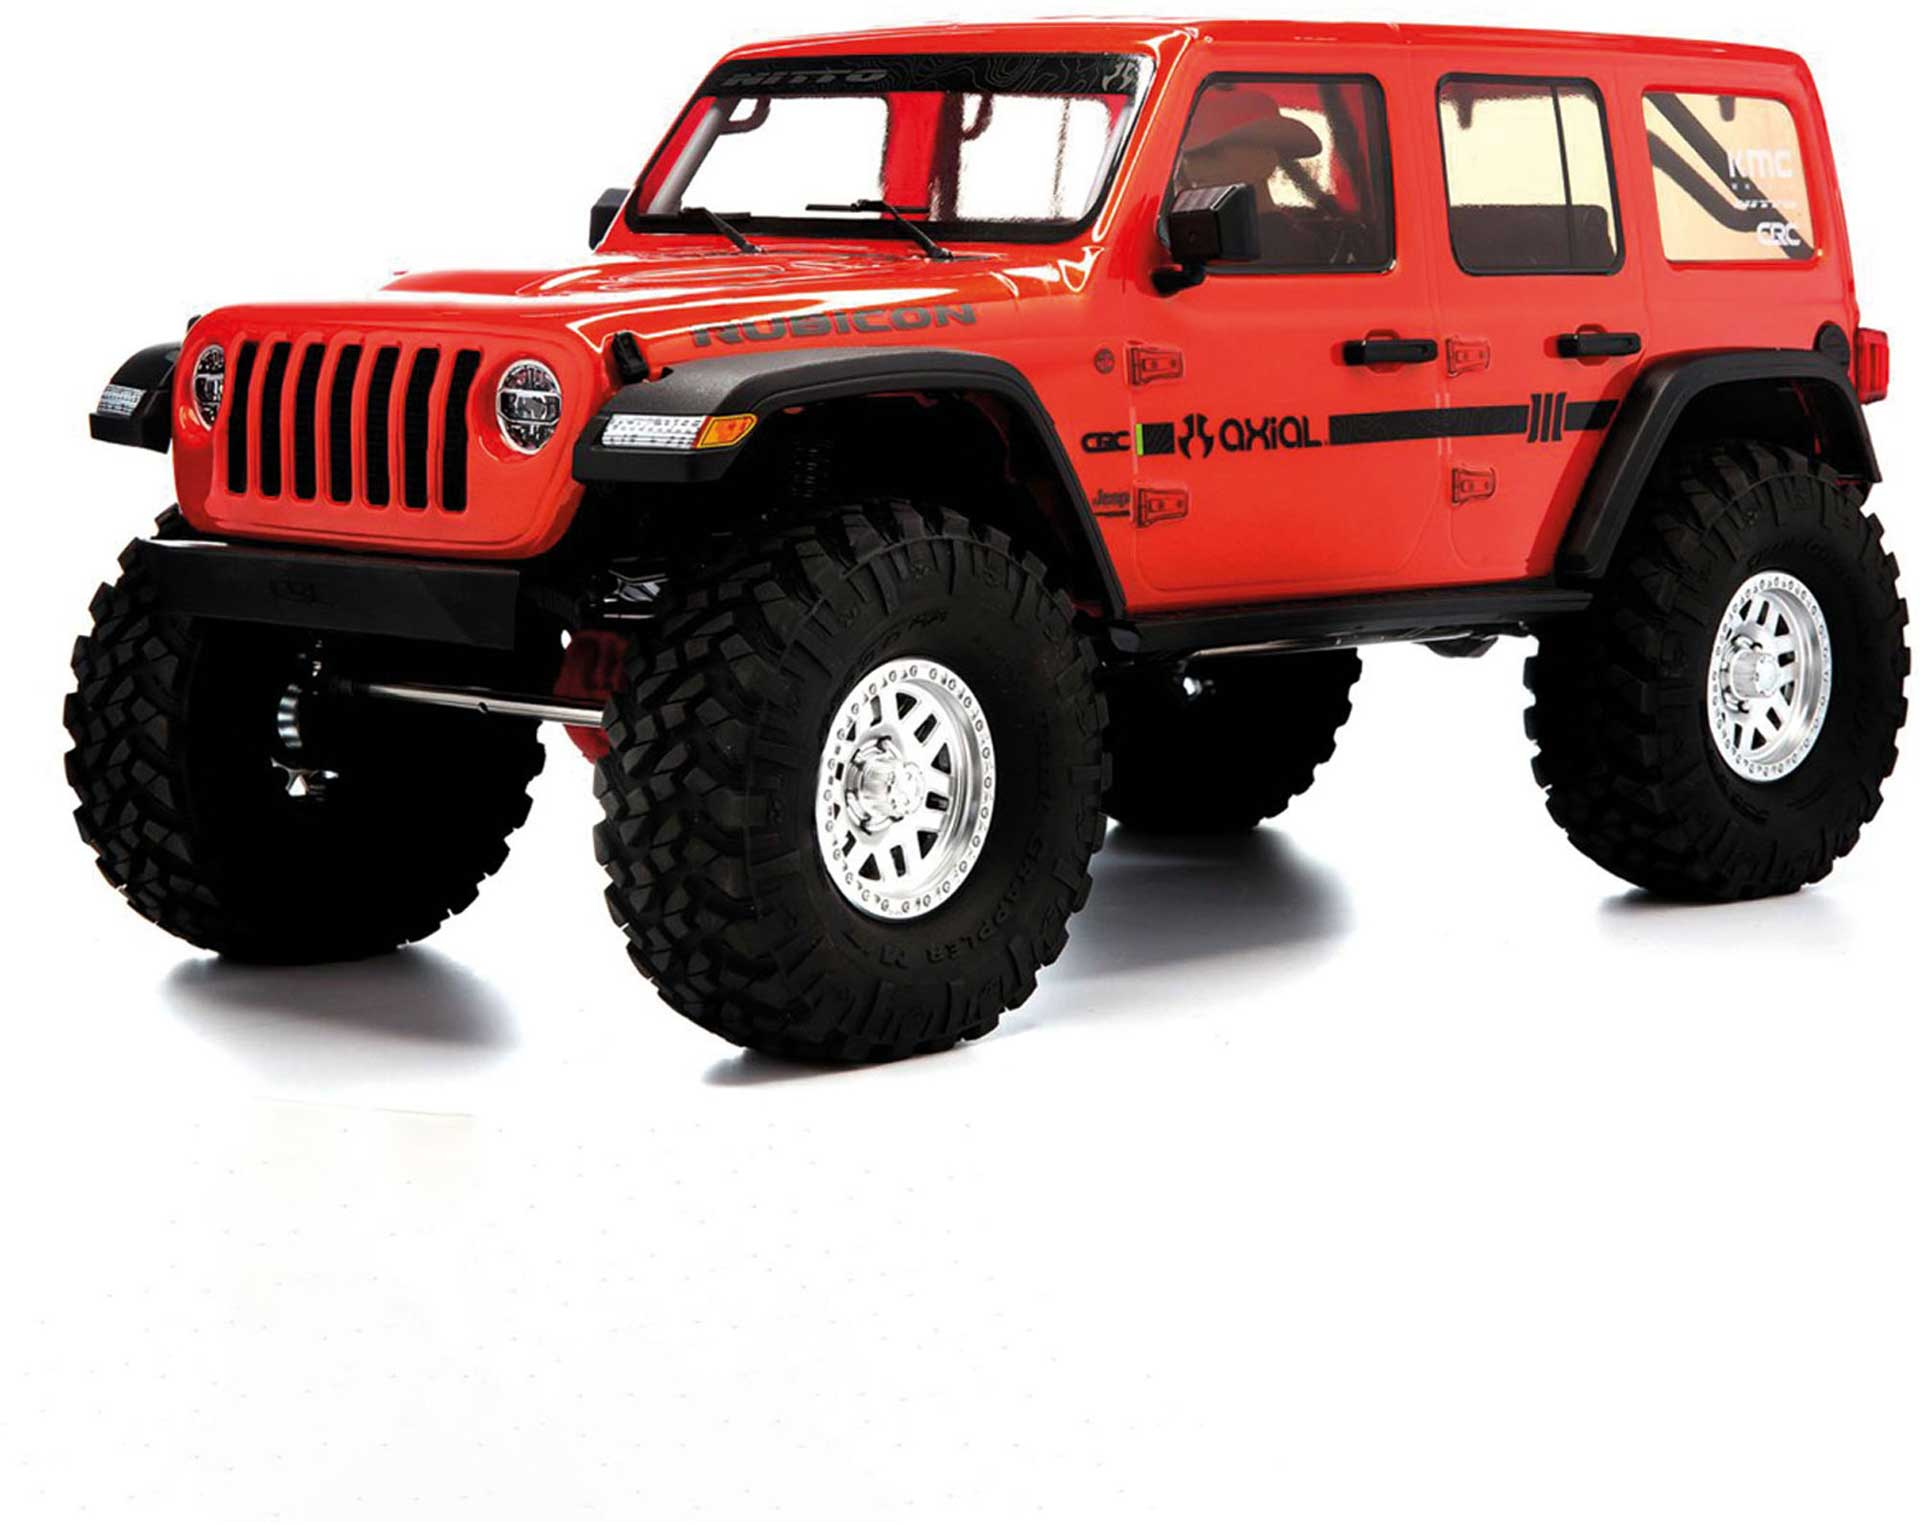 AXIAL SCX10III JEEP JLU Wrangler 1/10 RTR red with portal axles